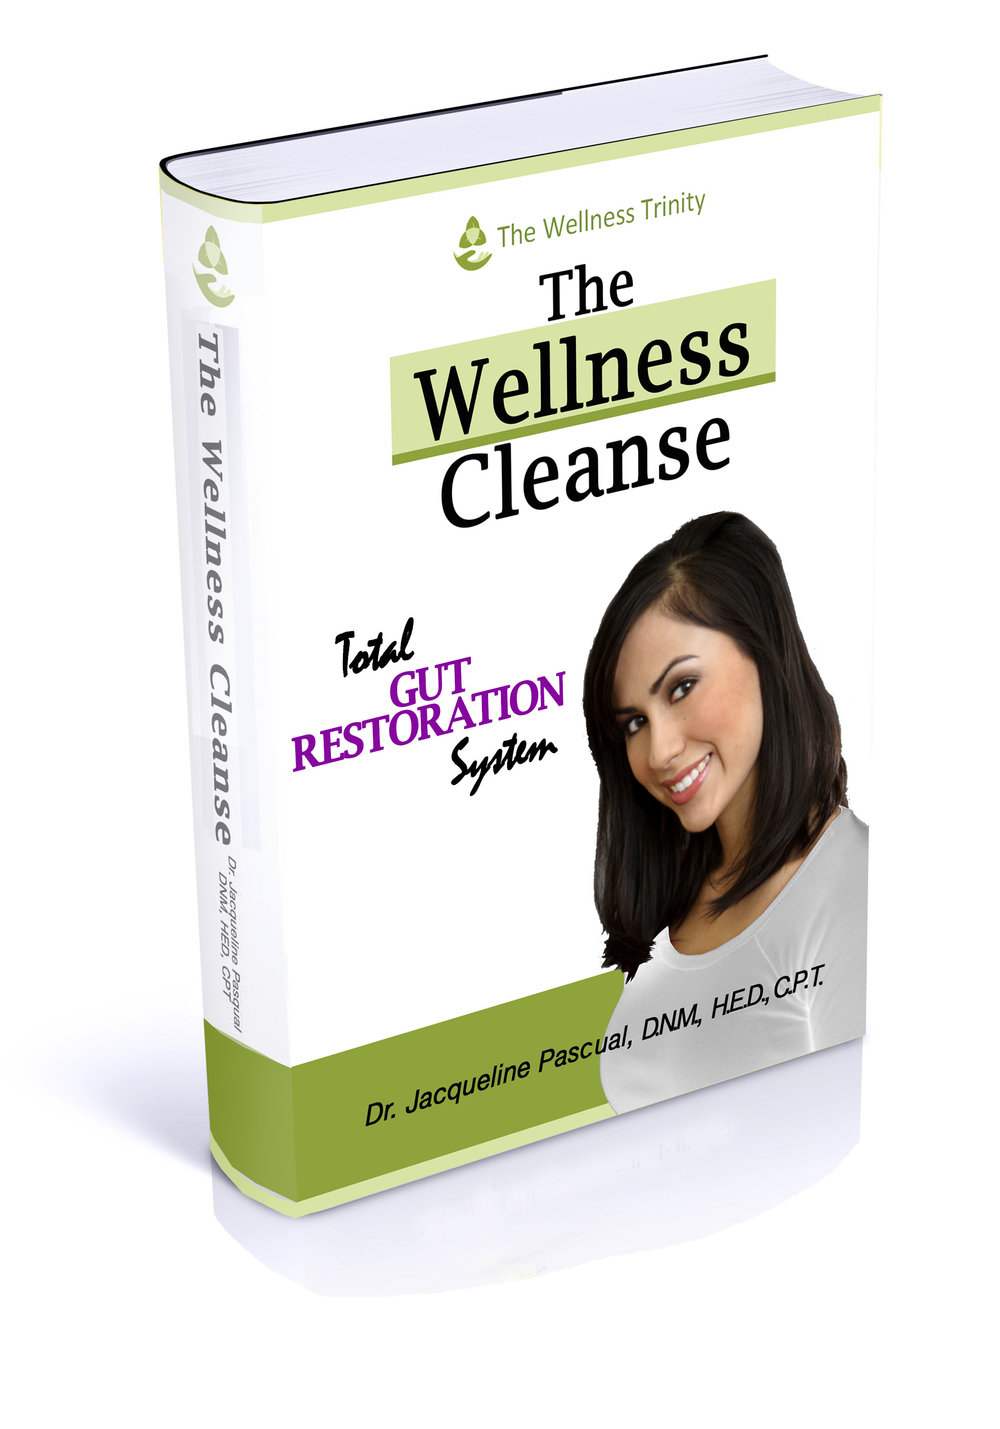 Natural Solutions For Modern Day Wellness... - Gut detox education, Recipes, and More.